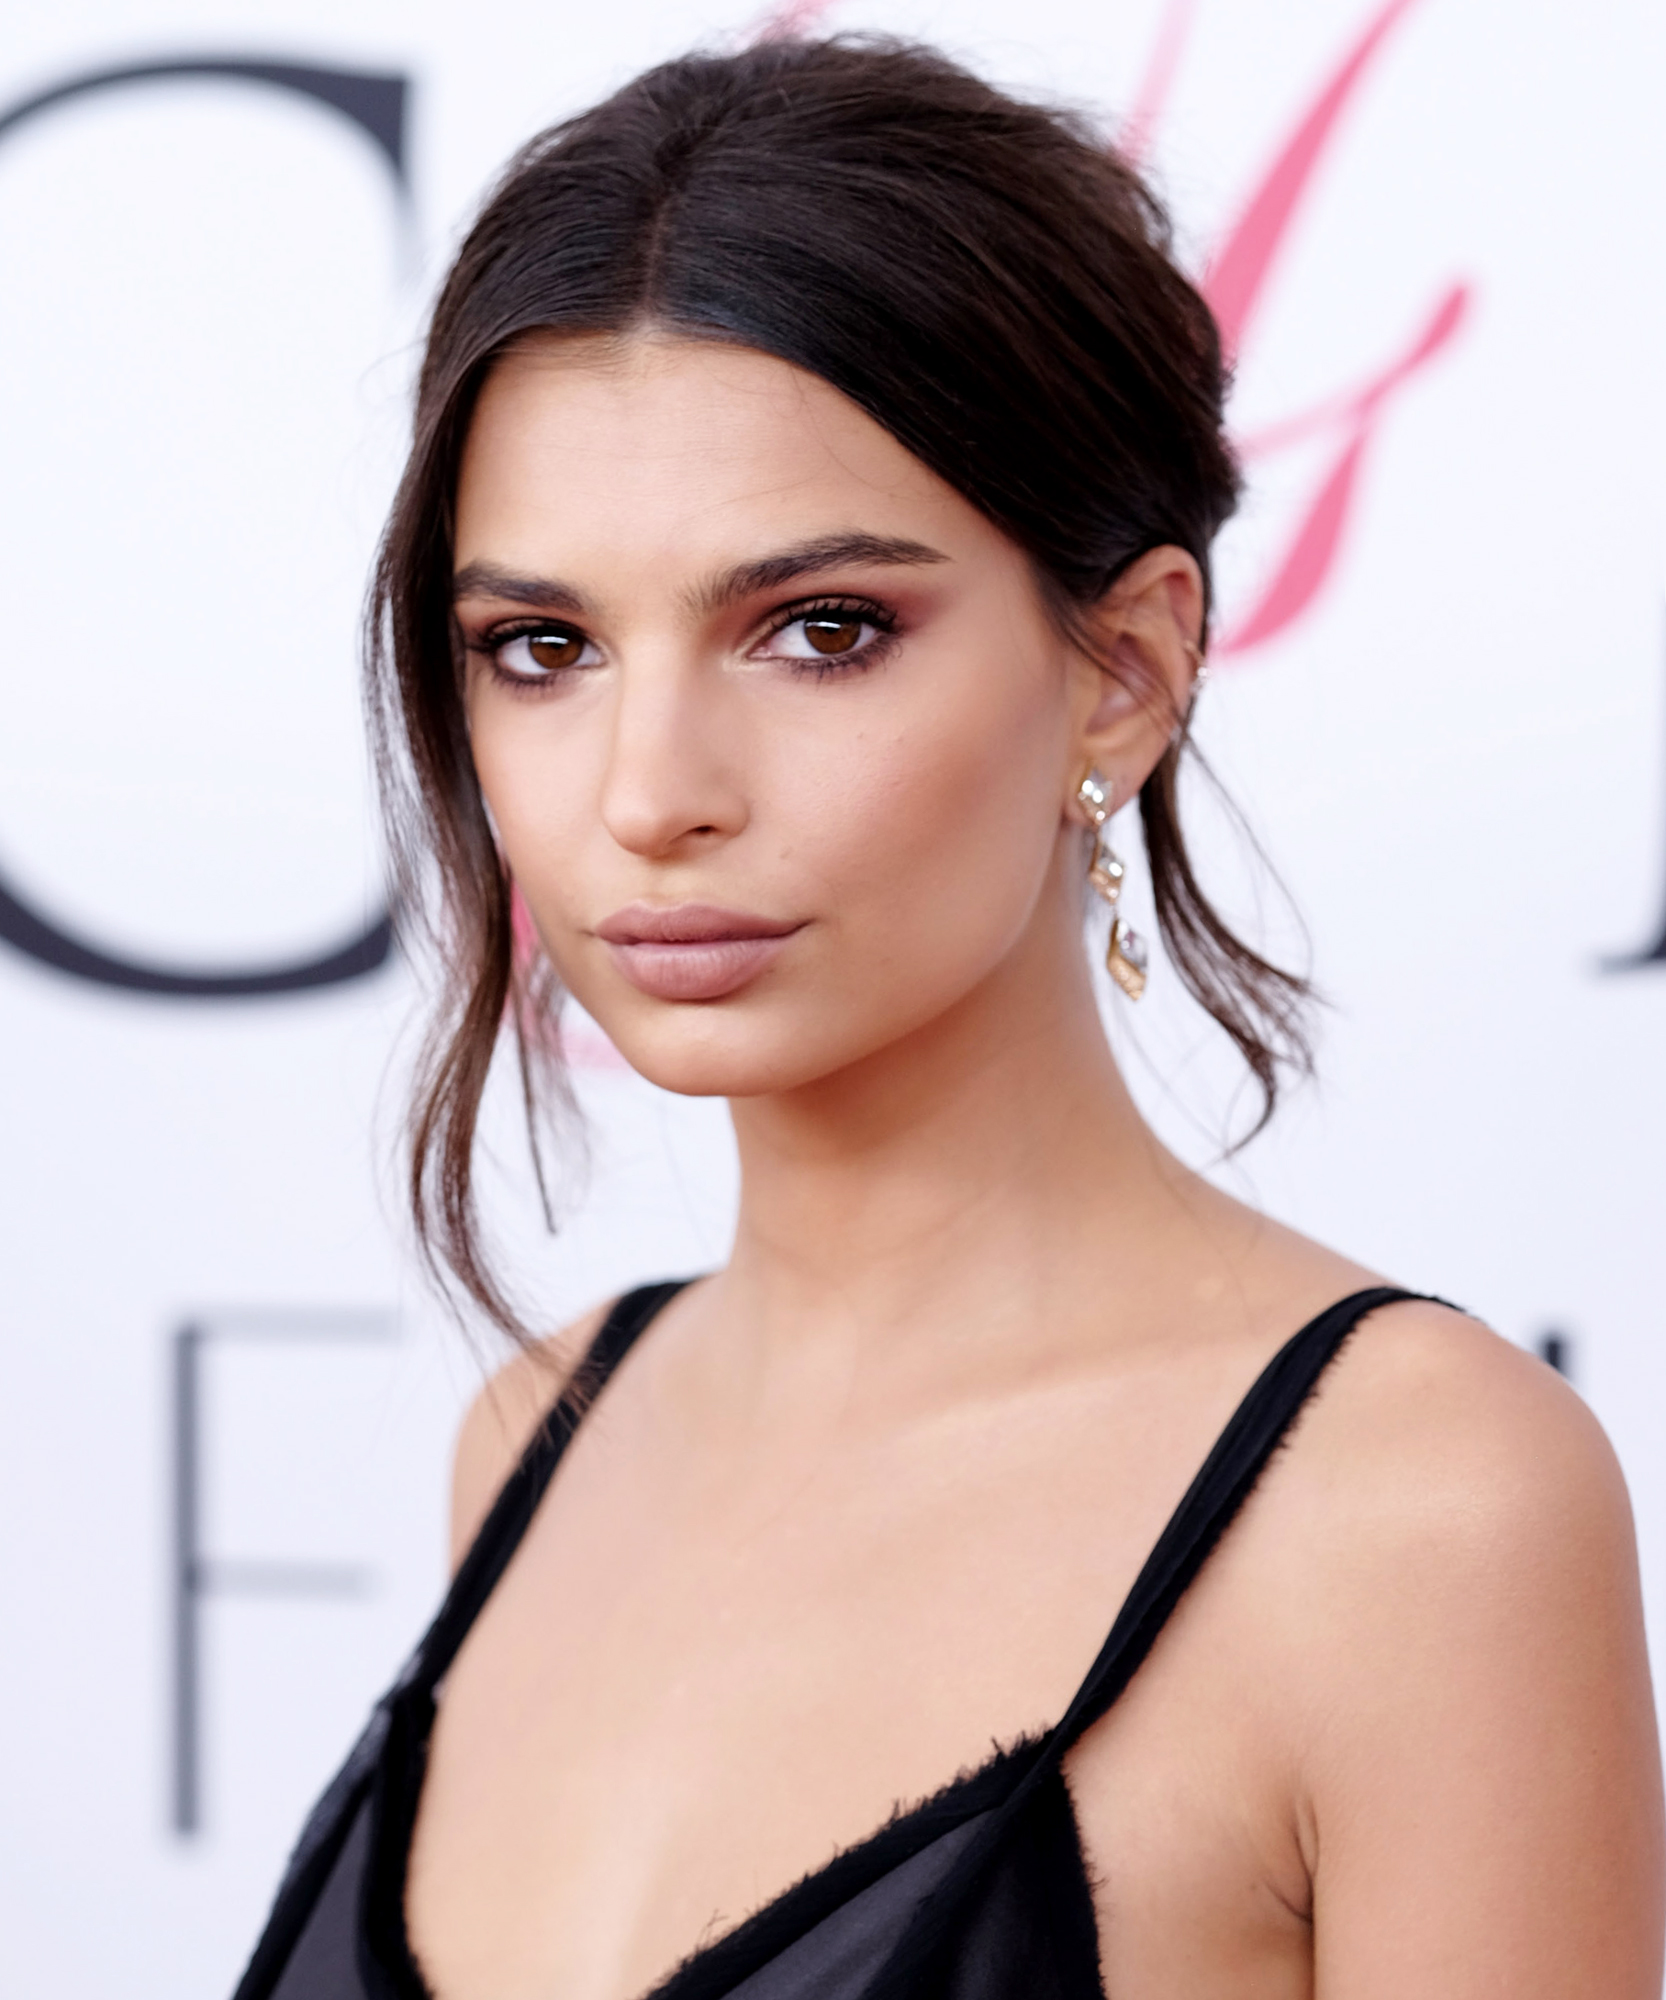 Emily Ratajkowski Launches Her First Swimwear Campaign—See the Exclusive Behind-the-Scenes Shots